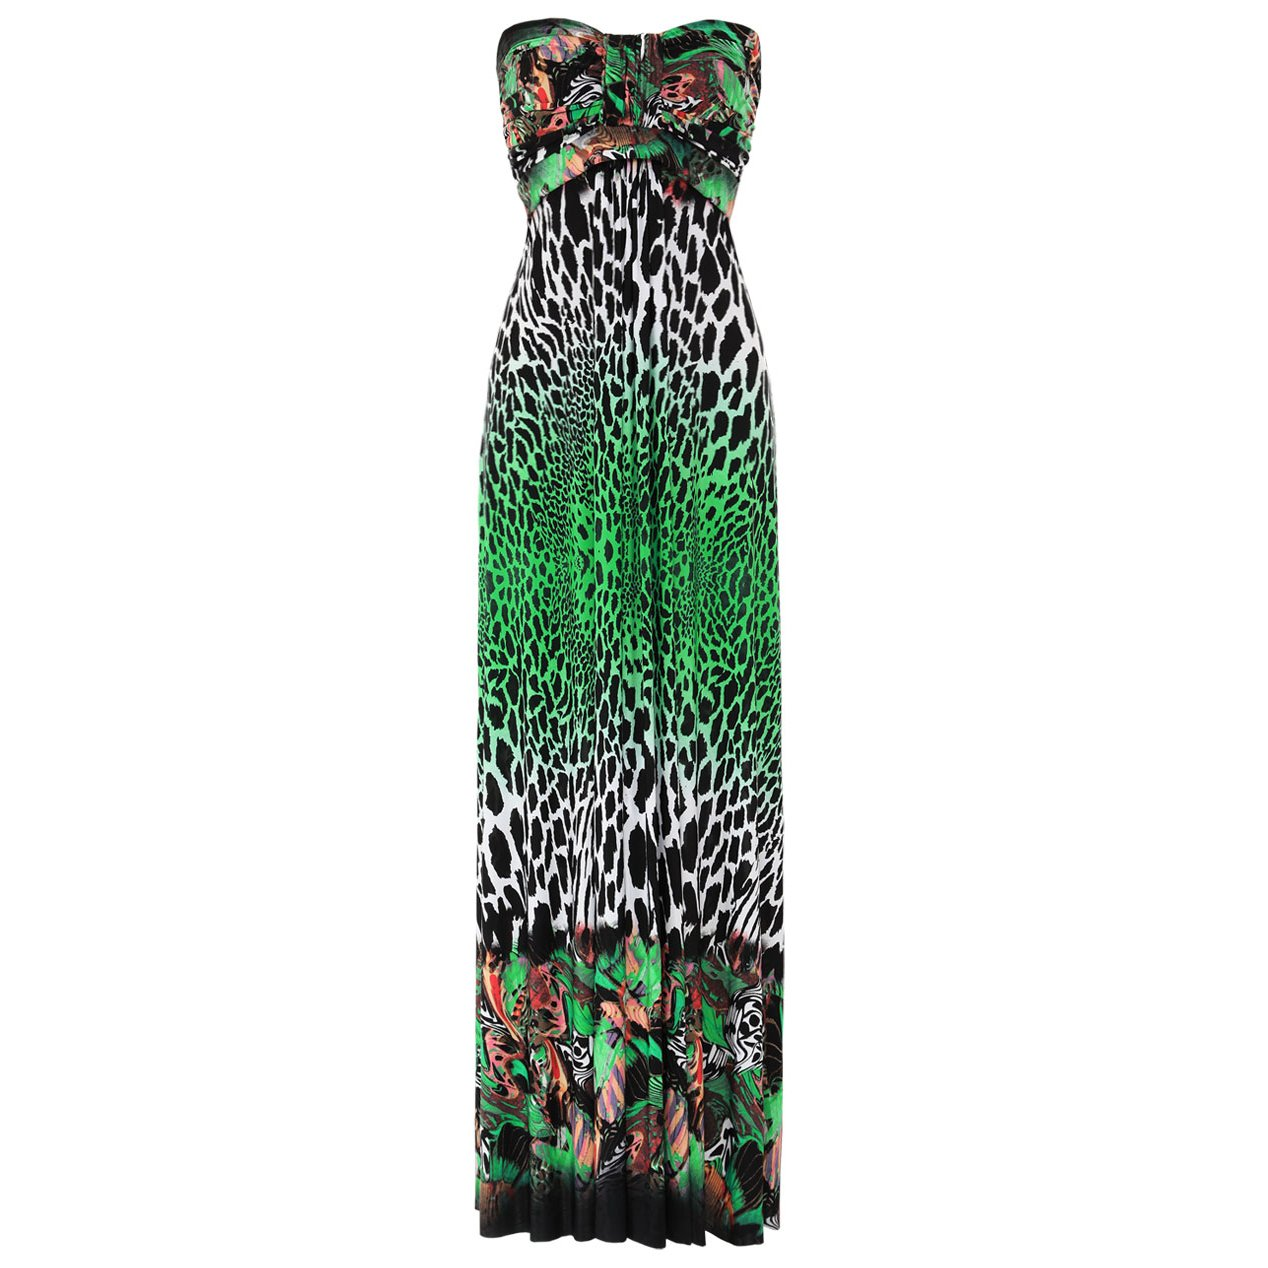 WOMENS GREEN LEOPARD ANIMAL PRINT LONG SUMMER EVENING HOLIDAY BEACH MAXI DRESS UK 8-10, US 4-6